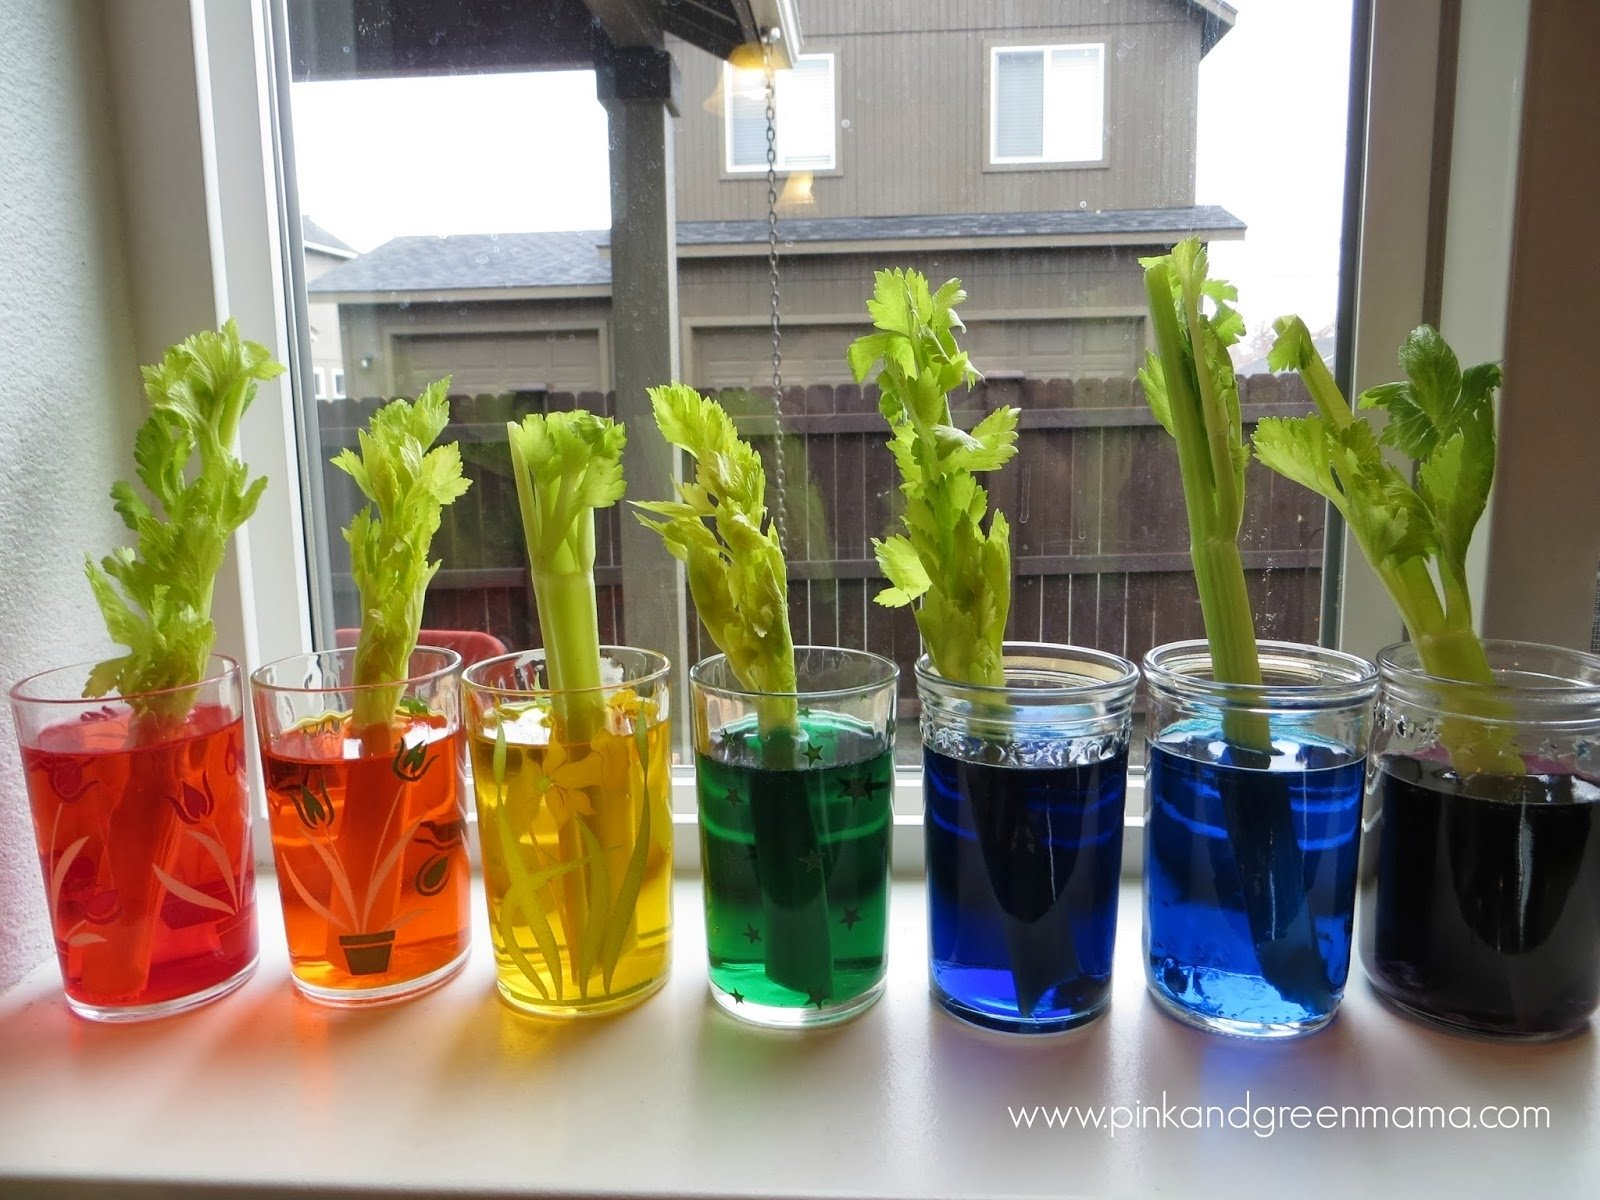 10 Unique Science Experiment Ideas For Kids 4th grade school science projects custom paper writing service 10 2021